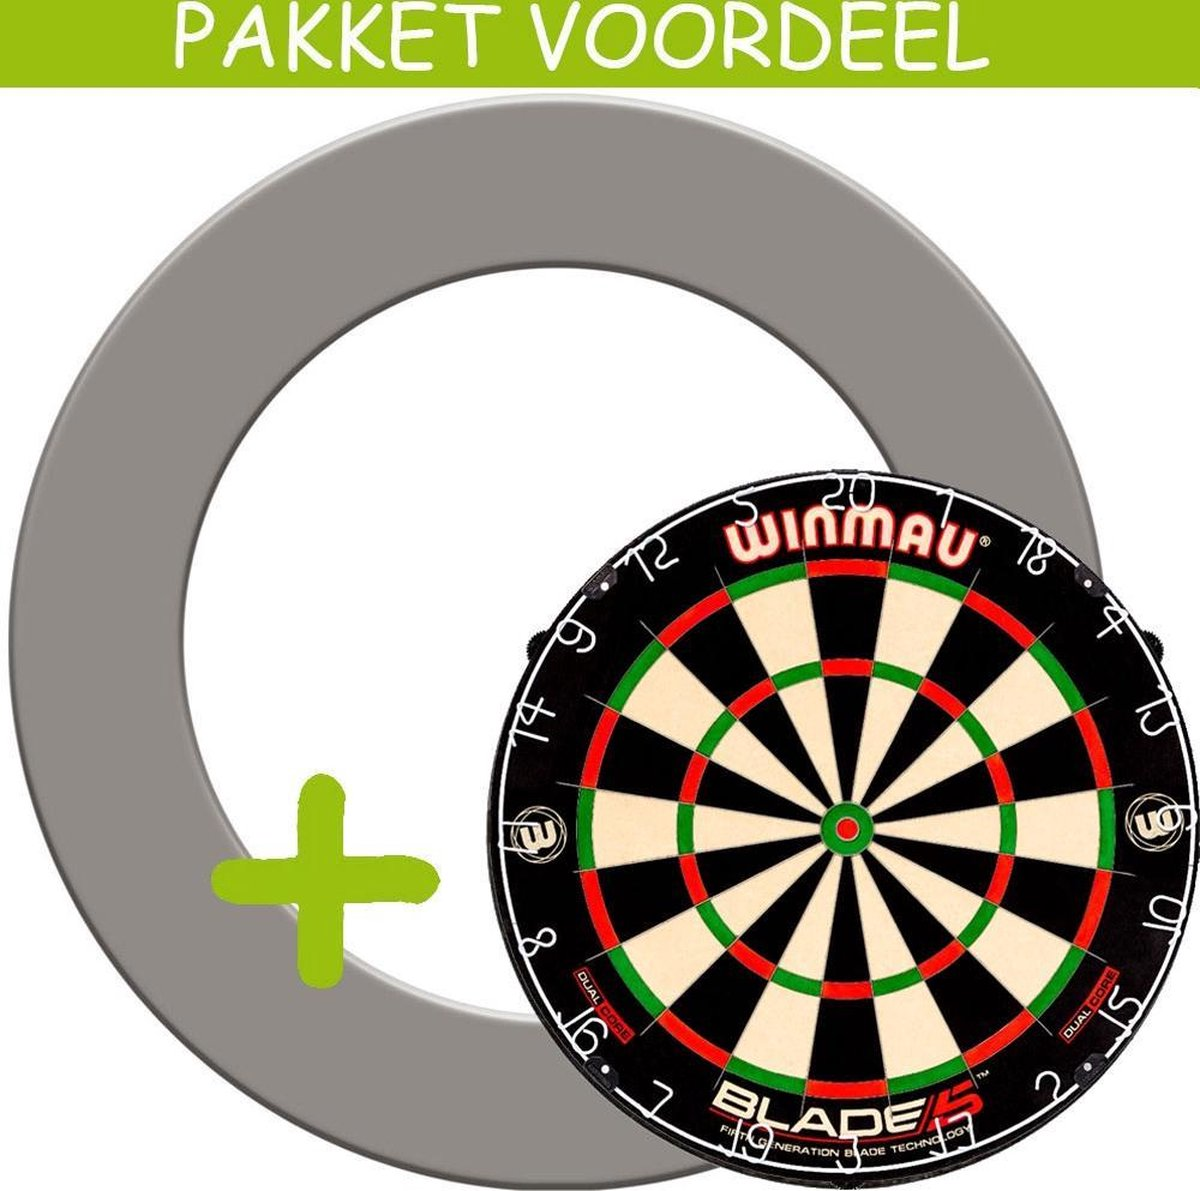 Dartbord Surround VoordeelPakket - Dual Core - Rubberen Surround-- (Grijs)